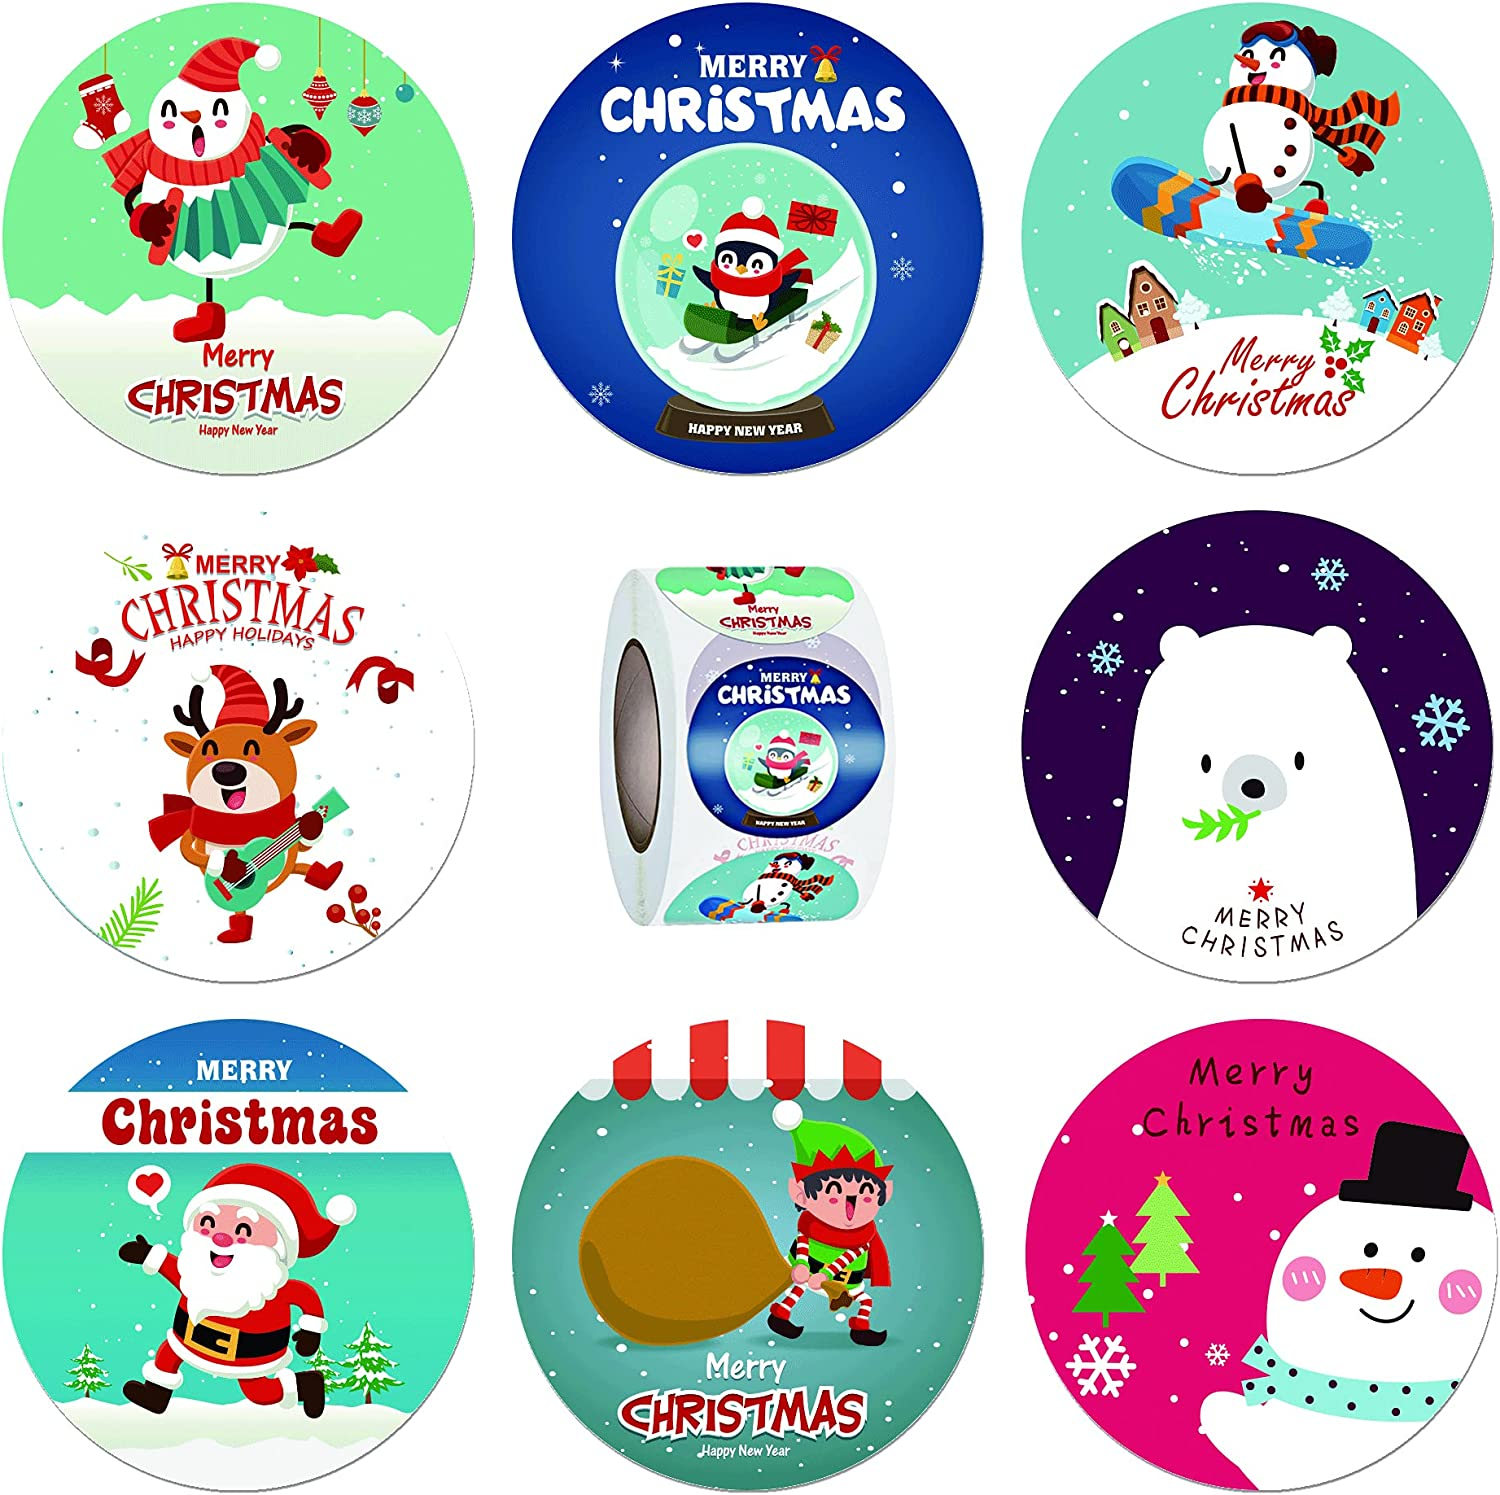 Christmas Stickers Roll 2 Inch for Kids Christmas Party Decorations Envelope Seals Gift Card Gift Box Decoration 500pcs 8 Kinds of Design